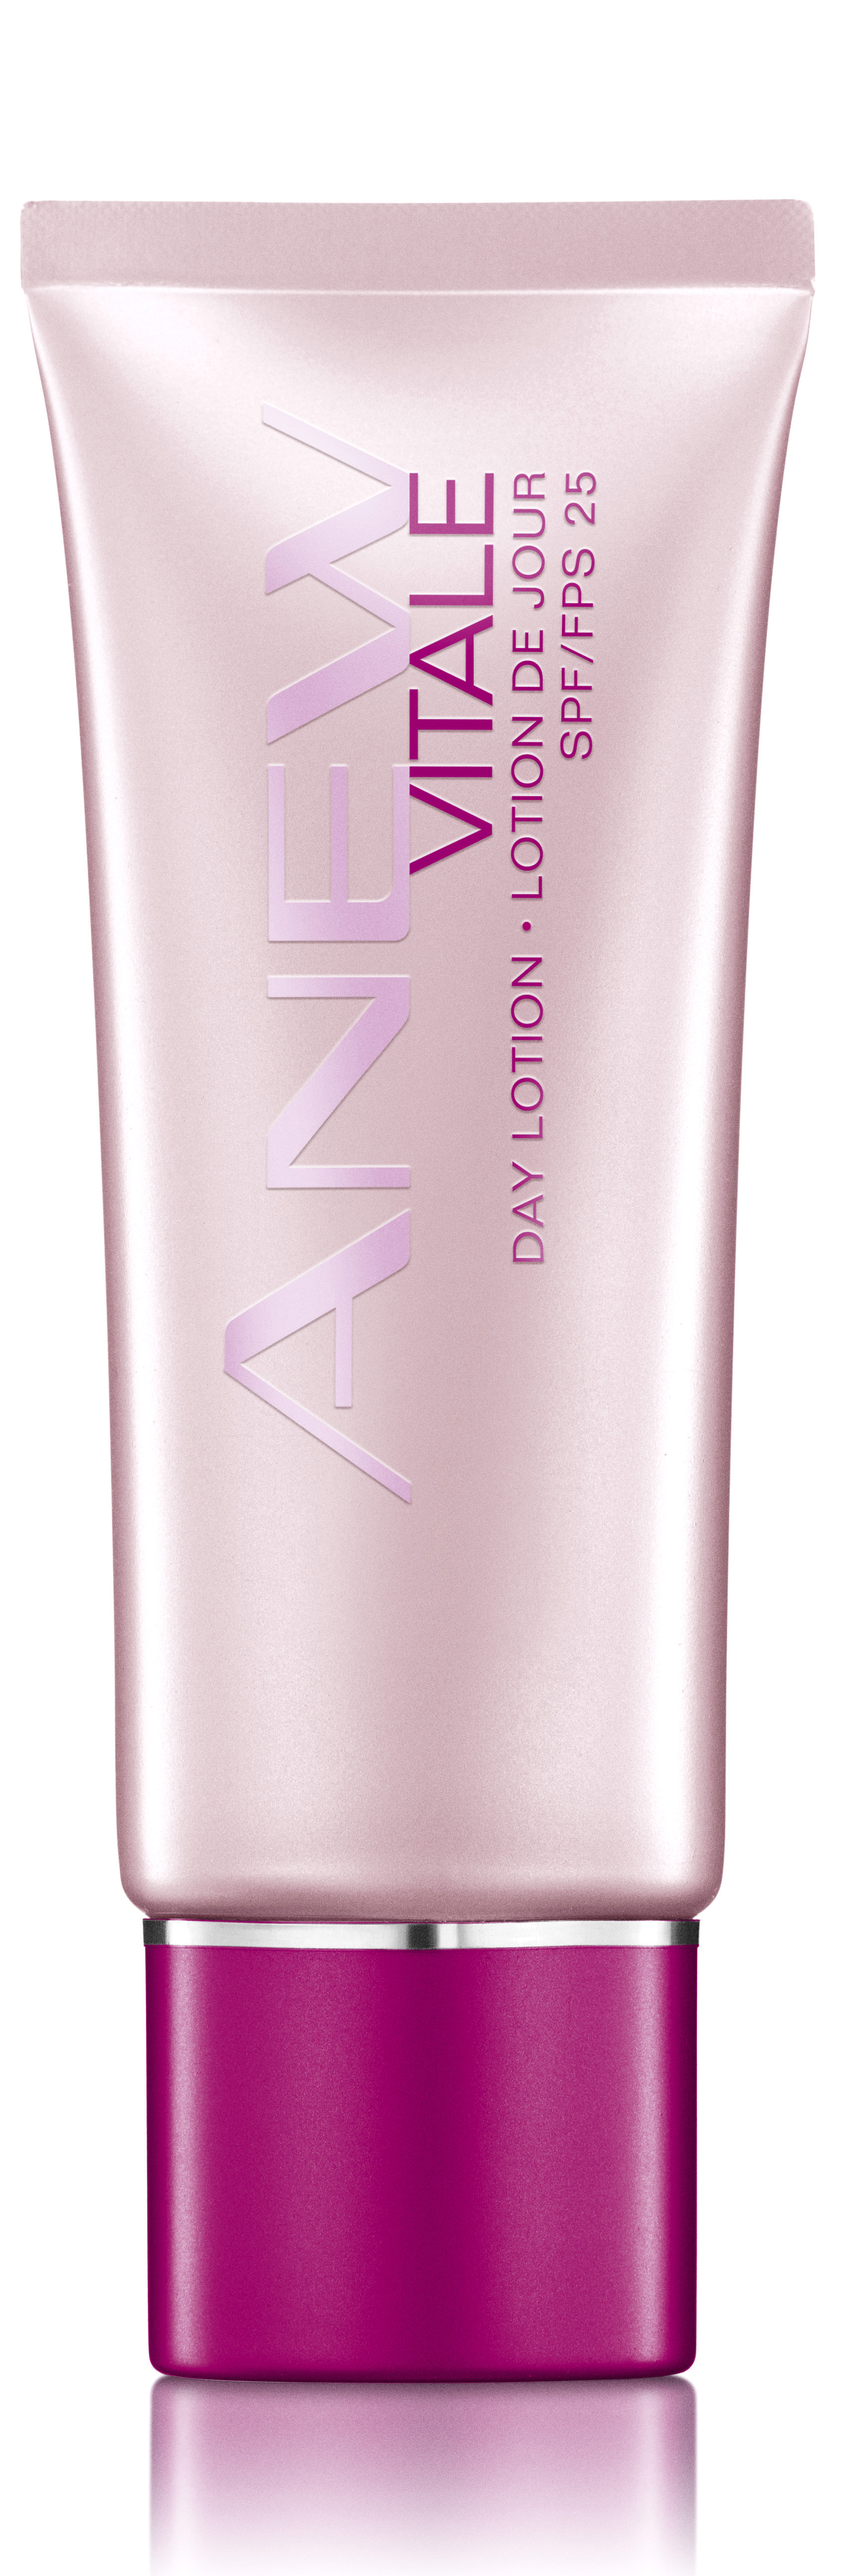 Anew Vitale lotion.jpg